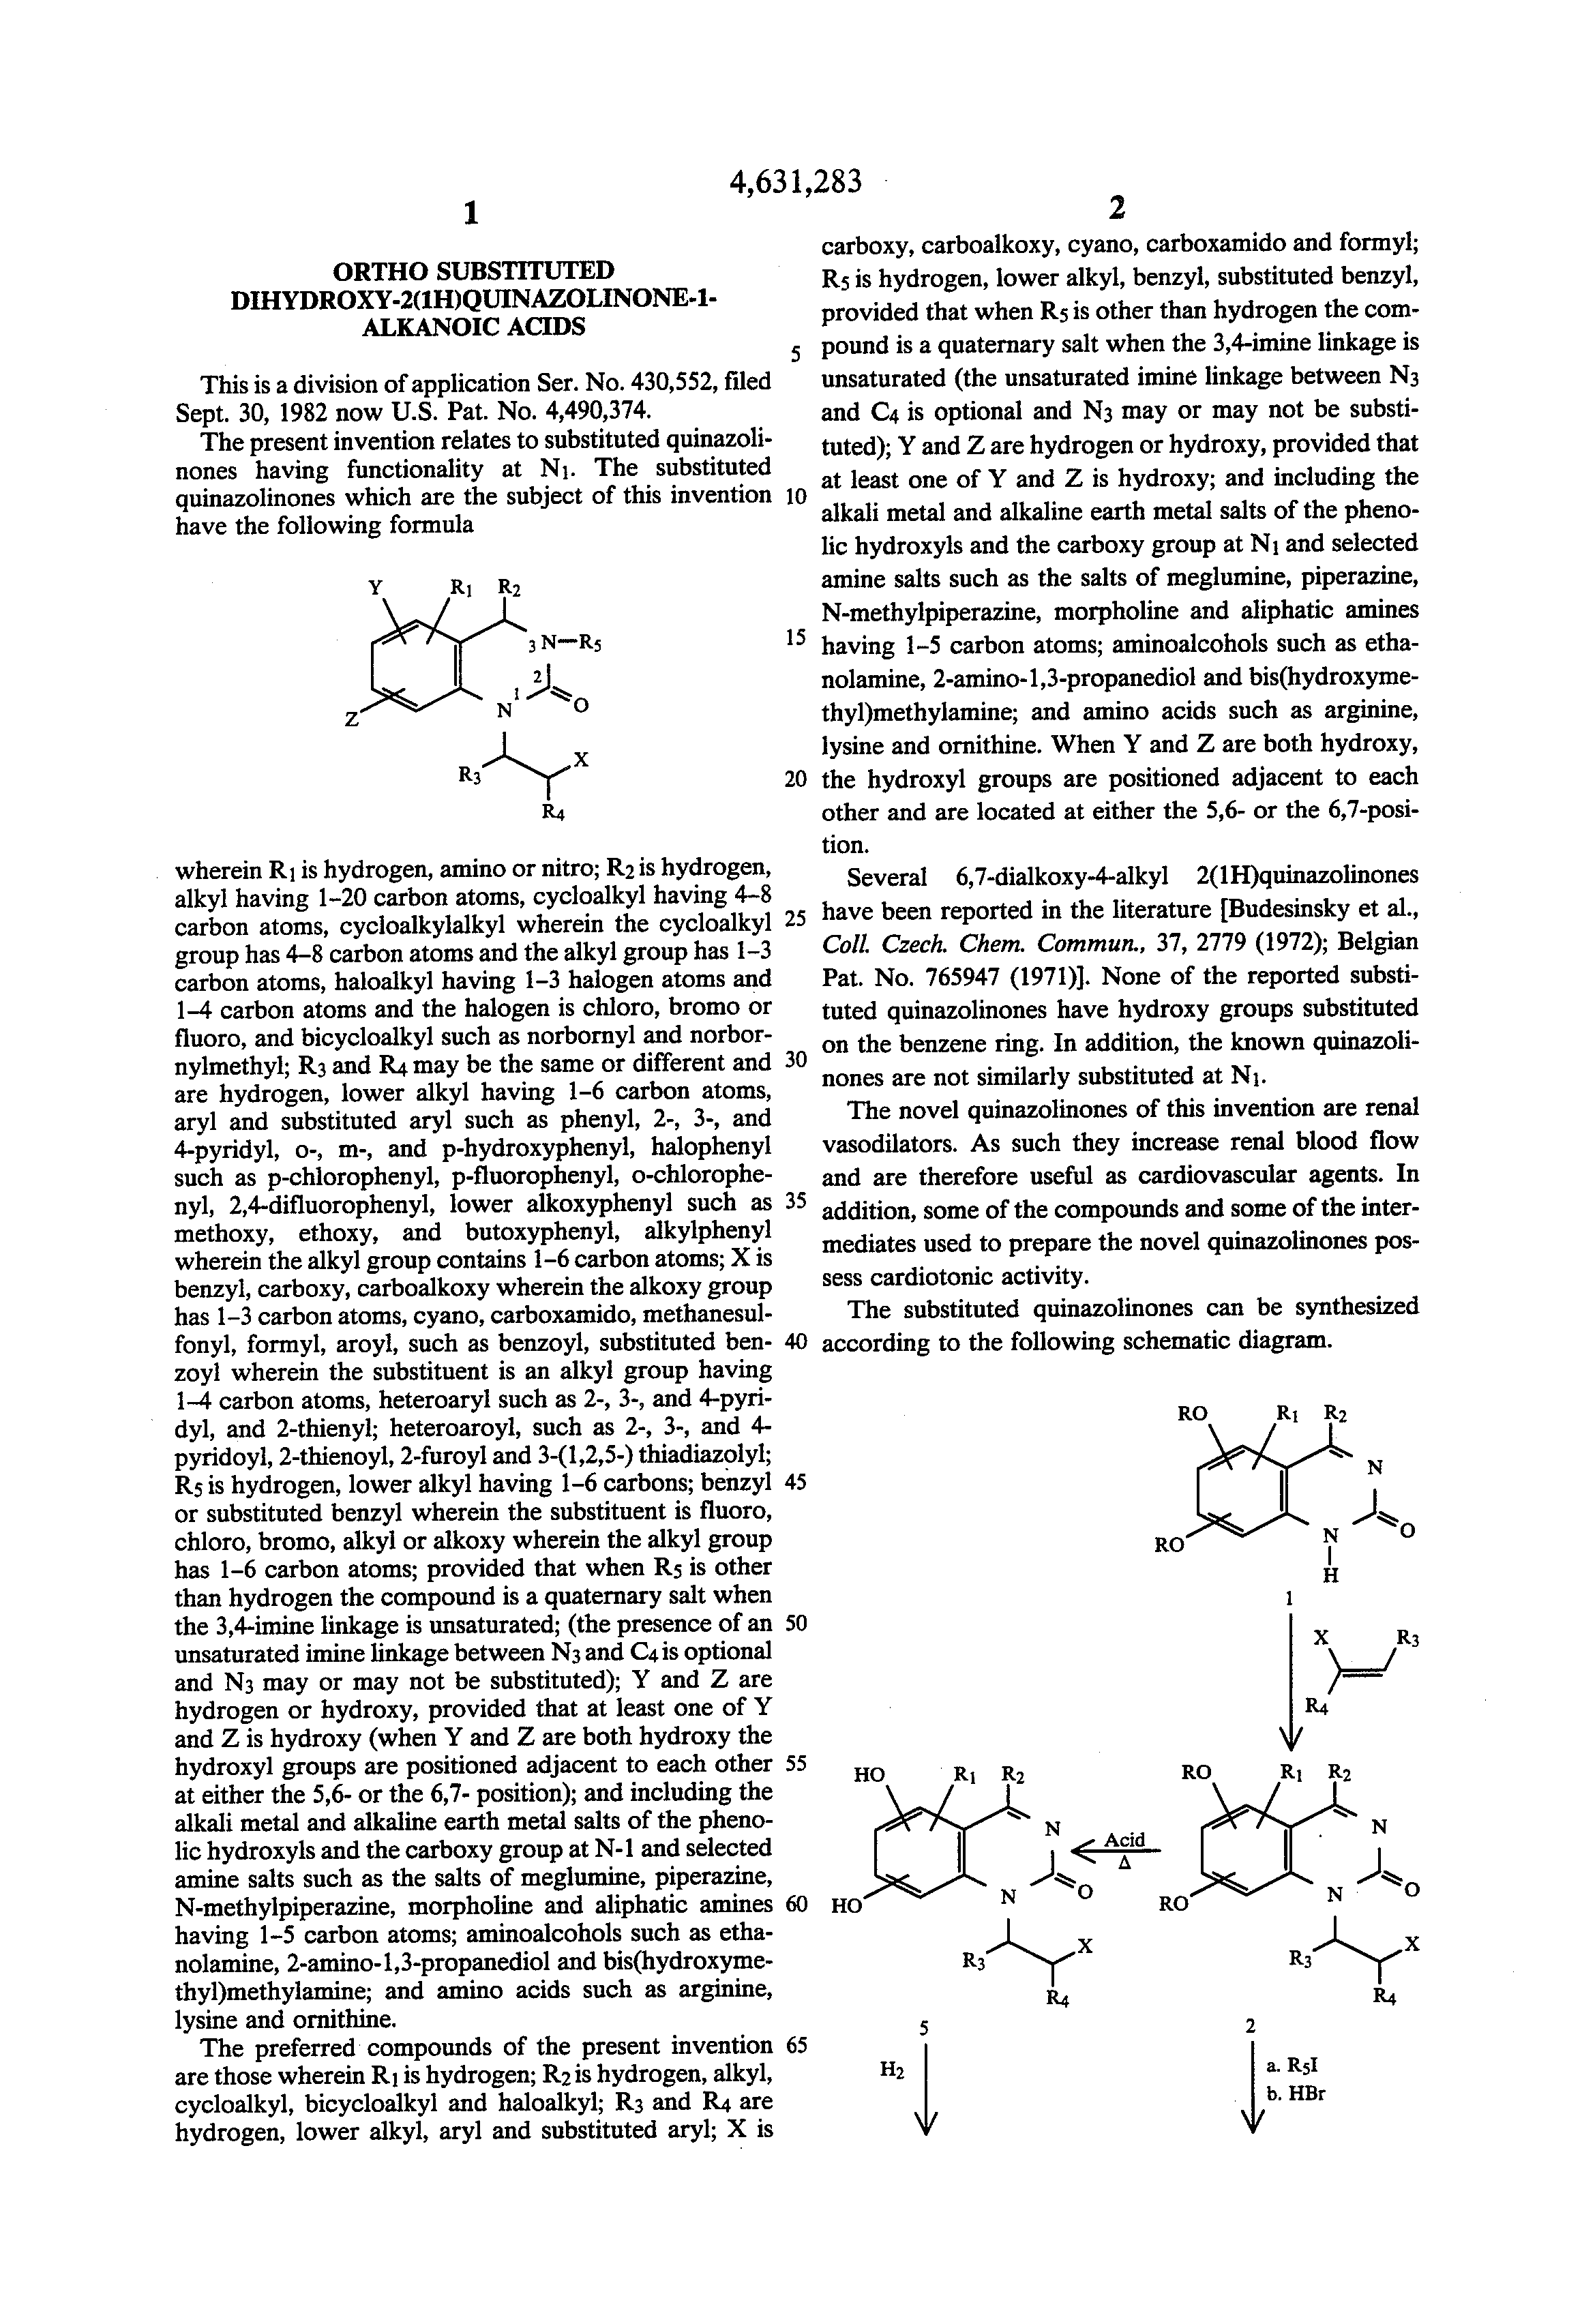 synthesis of substituted quinazolinones Synthesis of 1-substituted-2-chloromethyl-4-(1h)-quinazolinones antimicrobial agents april 2001 indian journal of heterocyclic chemistry 1-substitued-2-chloromethyl-4 (1h)- quinazolinones (iii) were synthesized in good yields by the reaction of 2-phenylaminobenzamide with excess of acid chloride under mild conditions.